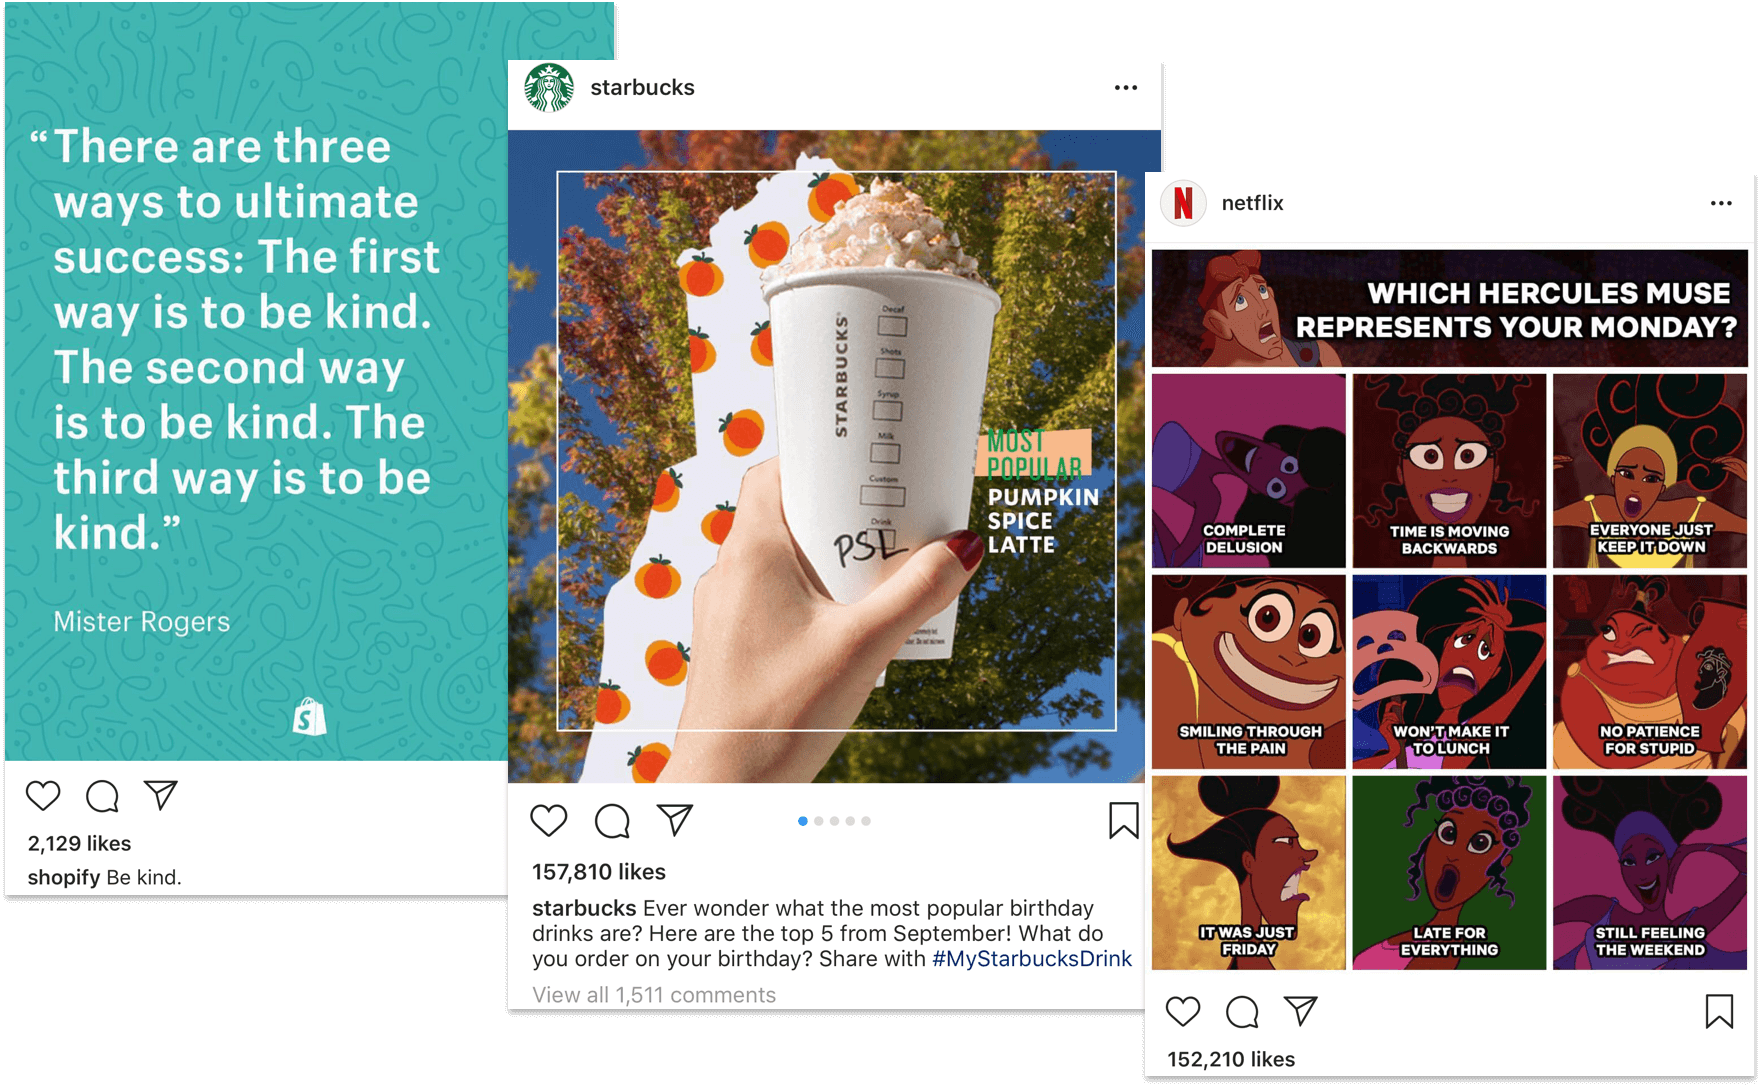 Instagram Images by Shopify, Starbucks and Netflix